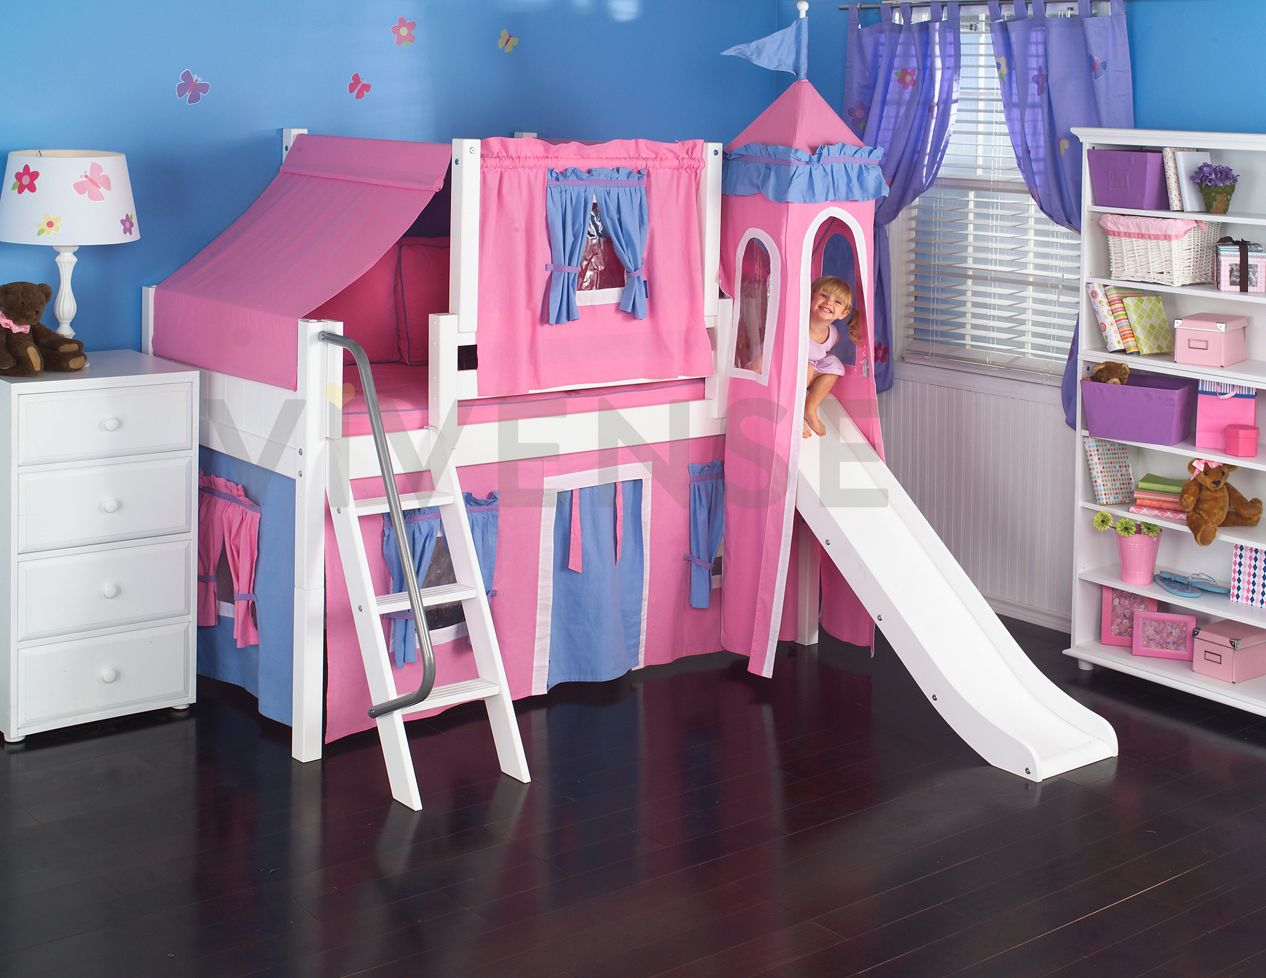 Bedroom furniture for girls castle - Maxtrix Princess Castle Bed W Angled Ladder And Slide Hot Pink Light Blue Twin Size Maxtrix Princess Castle Bed W Slide And Angle Ladder Hot